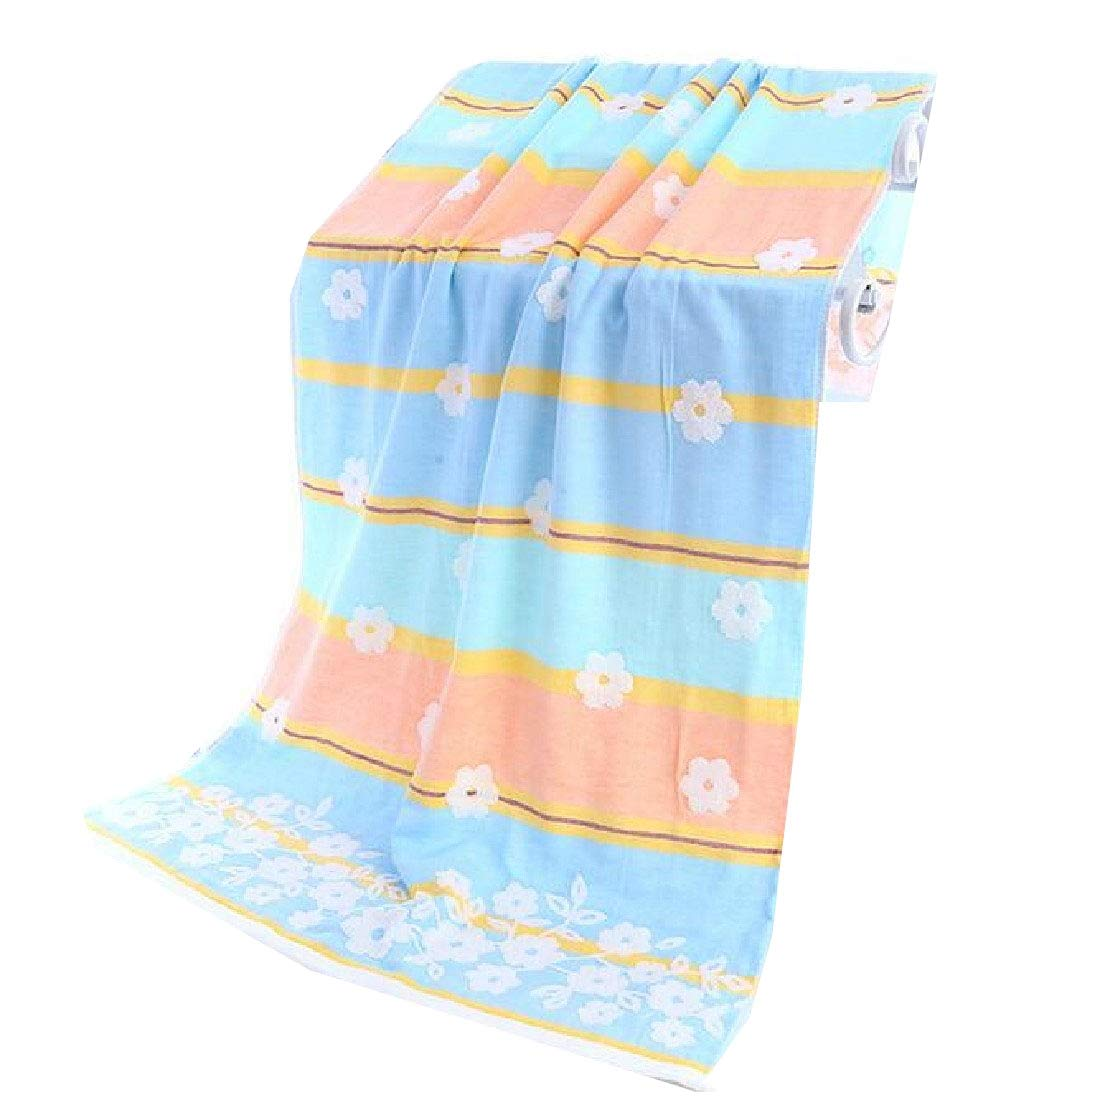 Zimaes Super Soft Ideal for Everyday use Antibacterial Floral Printed Towels Eco-Friendly Bath Sheet Blue 70140cm